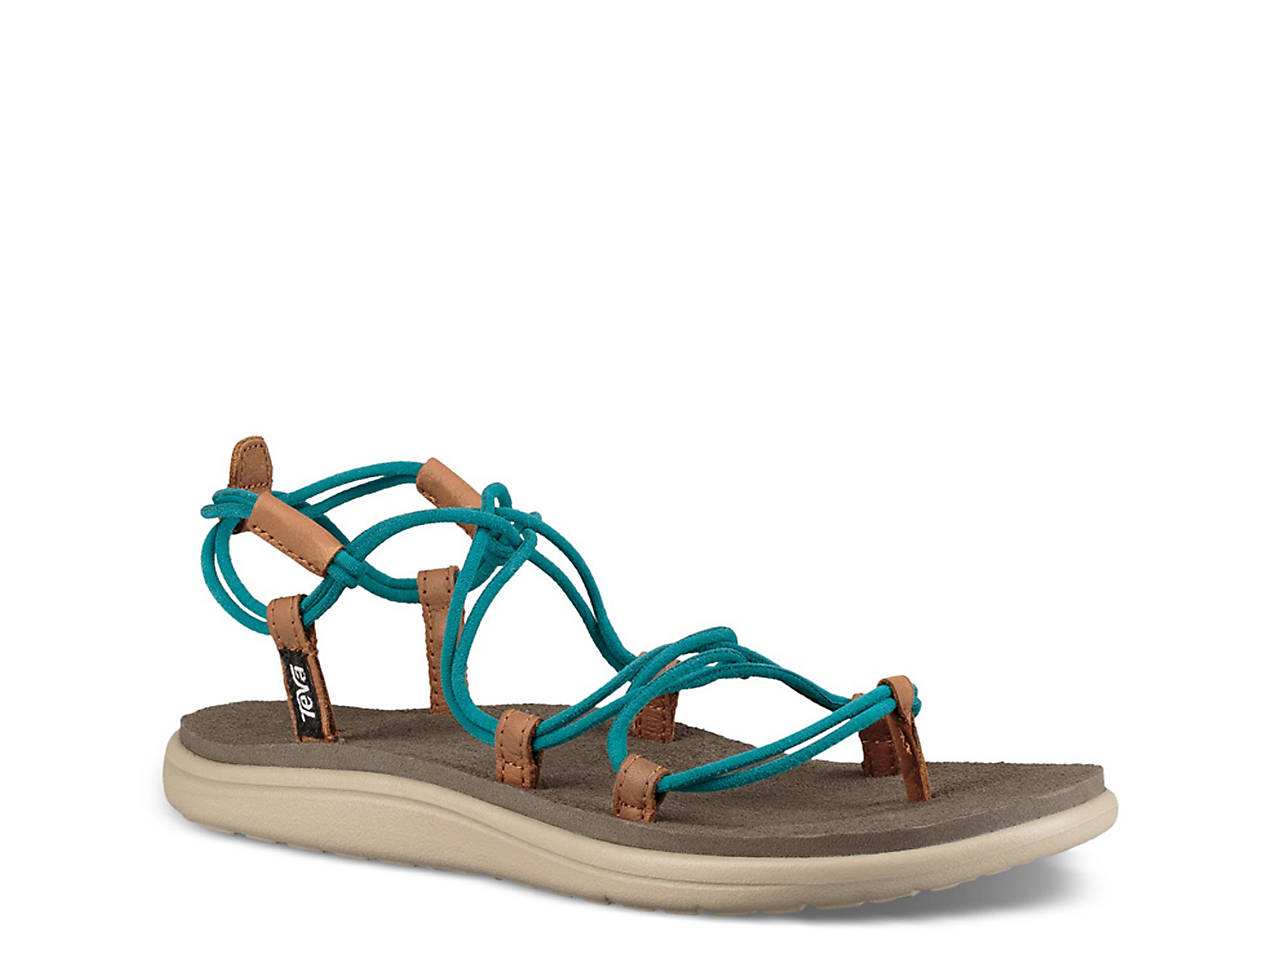 5480602cb226 Teva Voya Infinity Sandal Women s Shoes